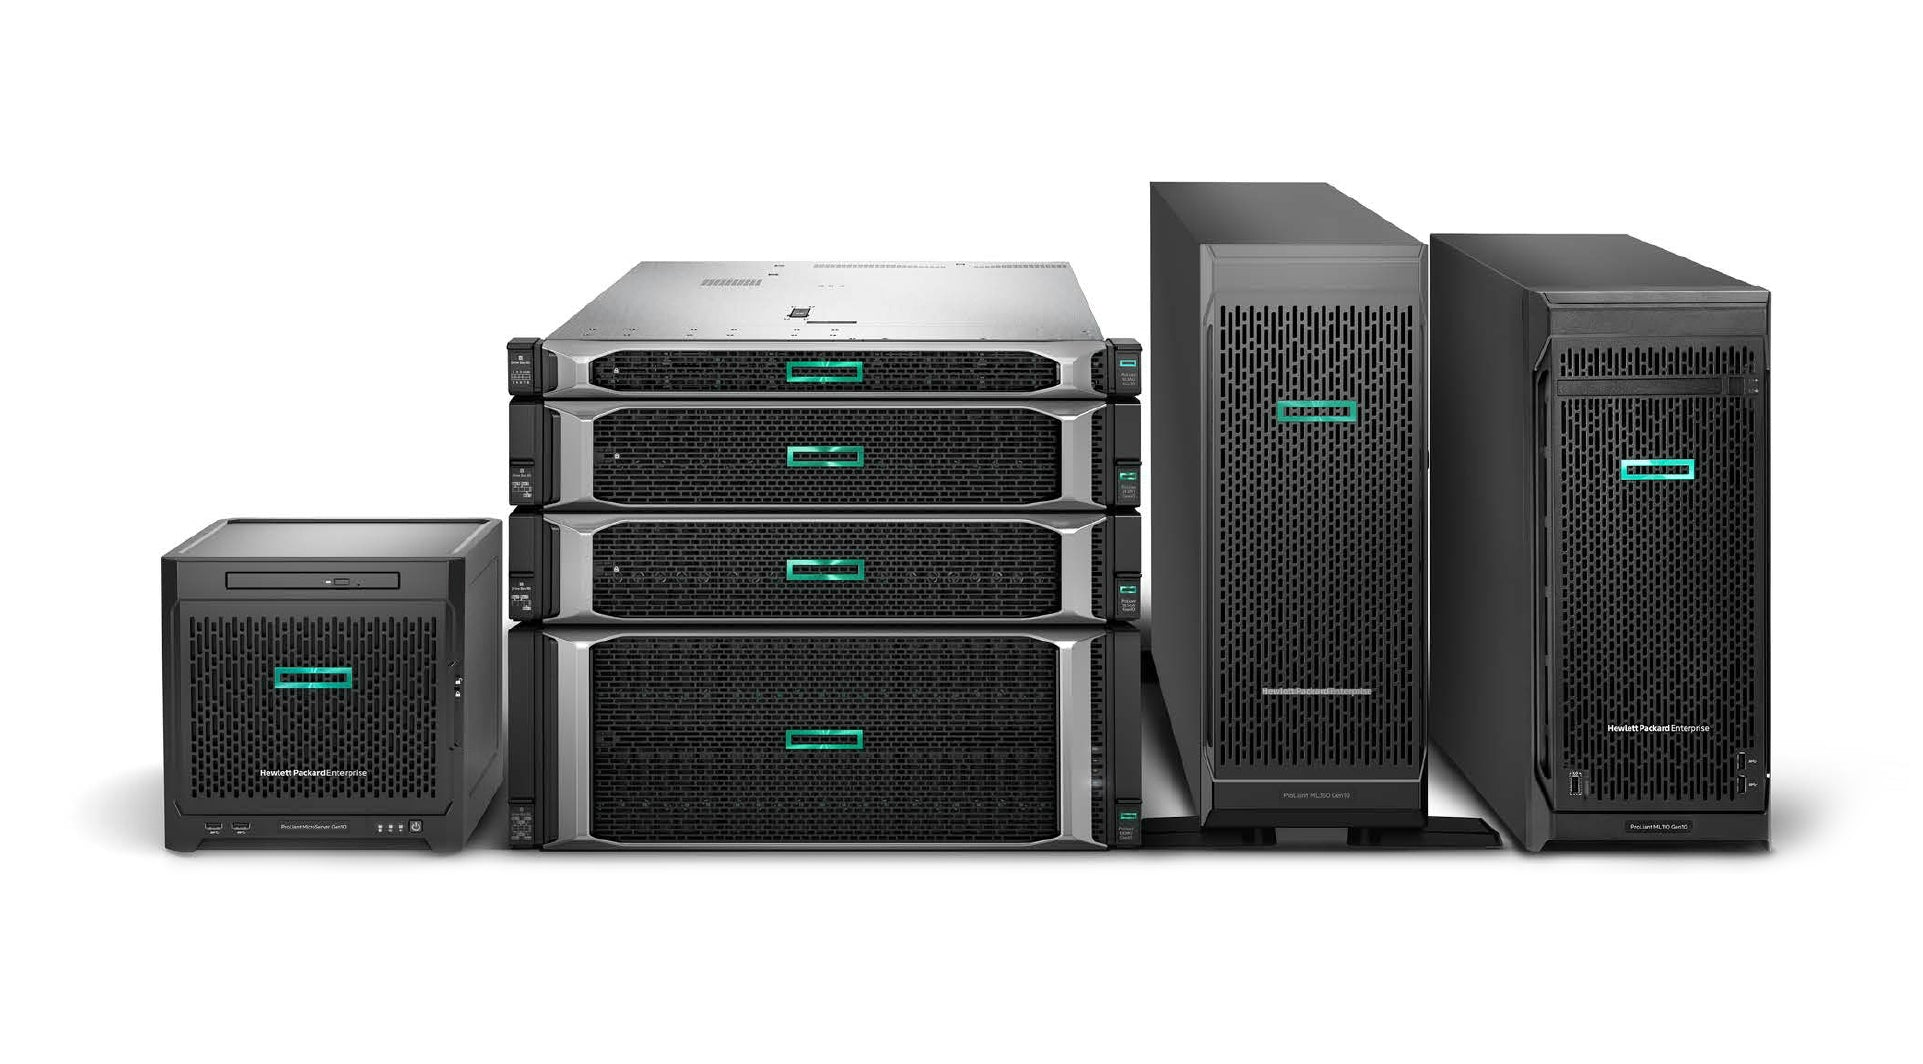 Virtualization with ClearVM on HPE ProLiant Gen10 Servers